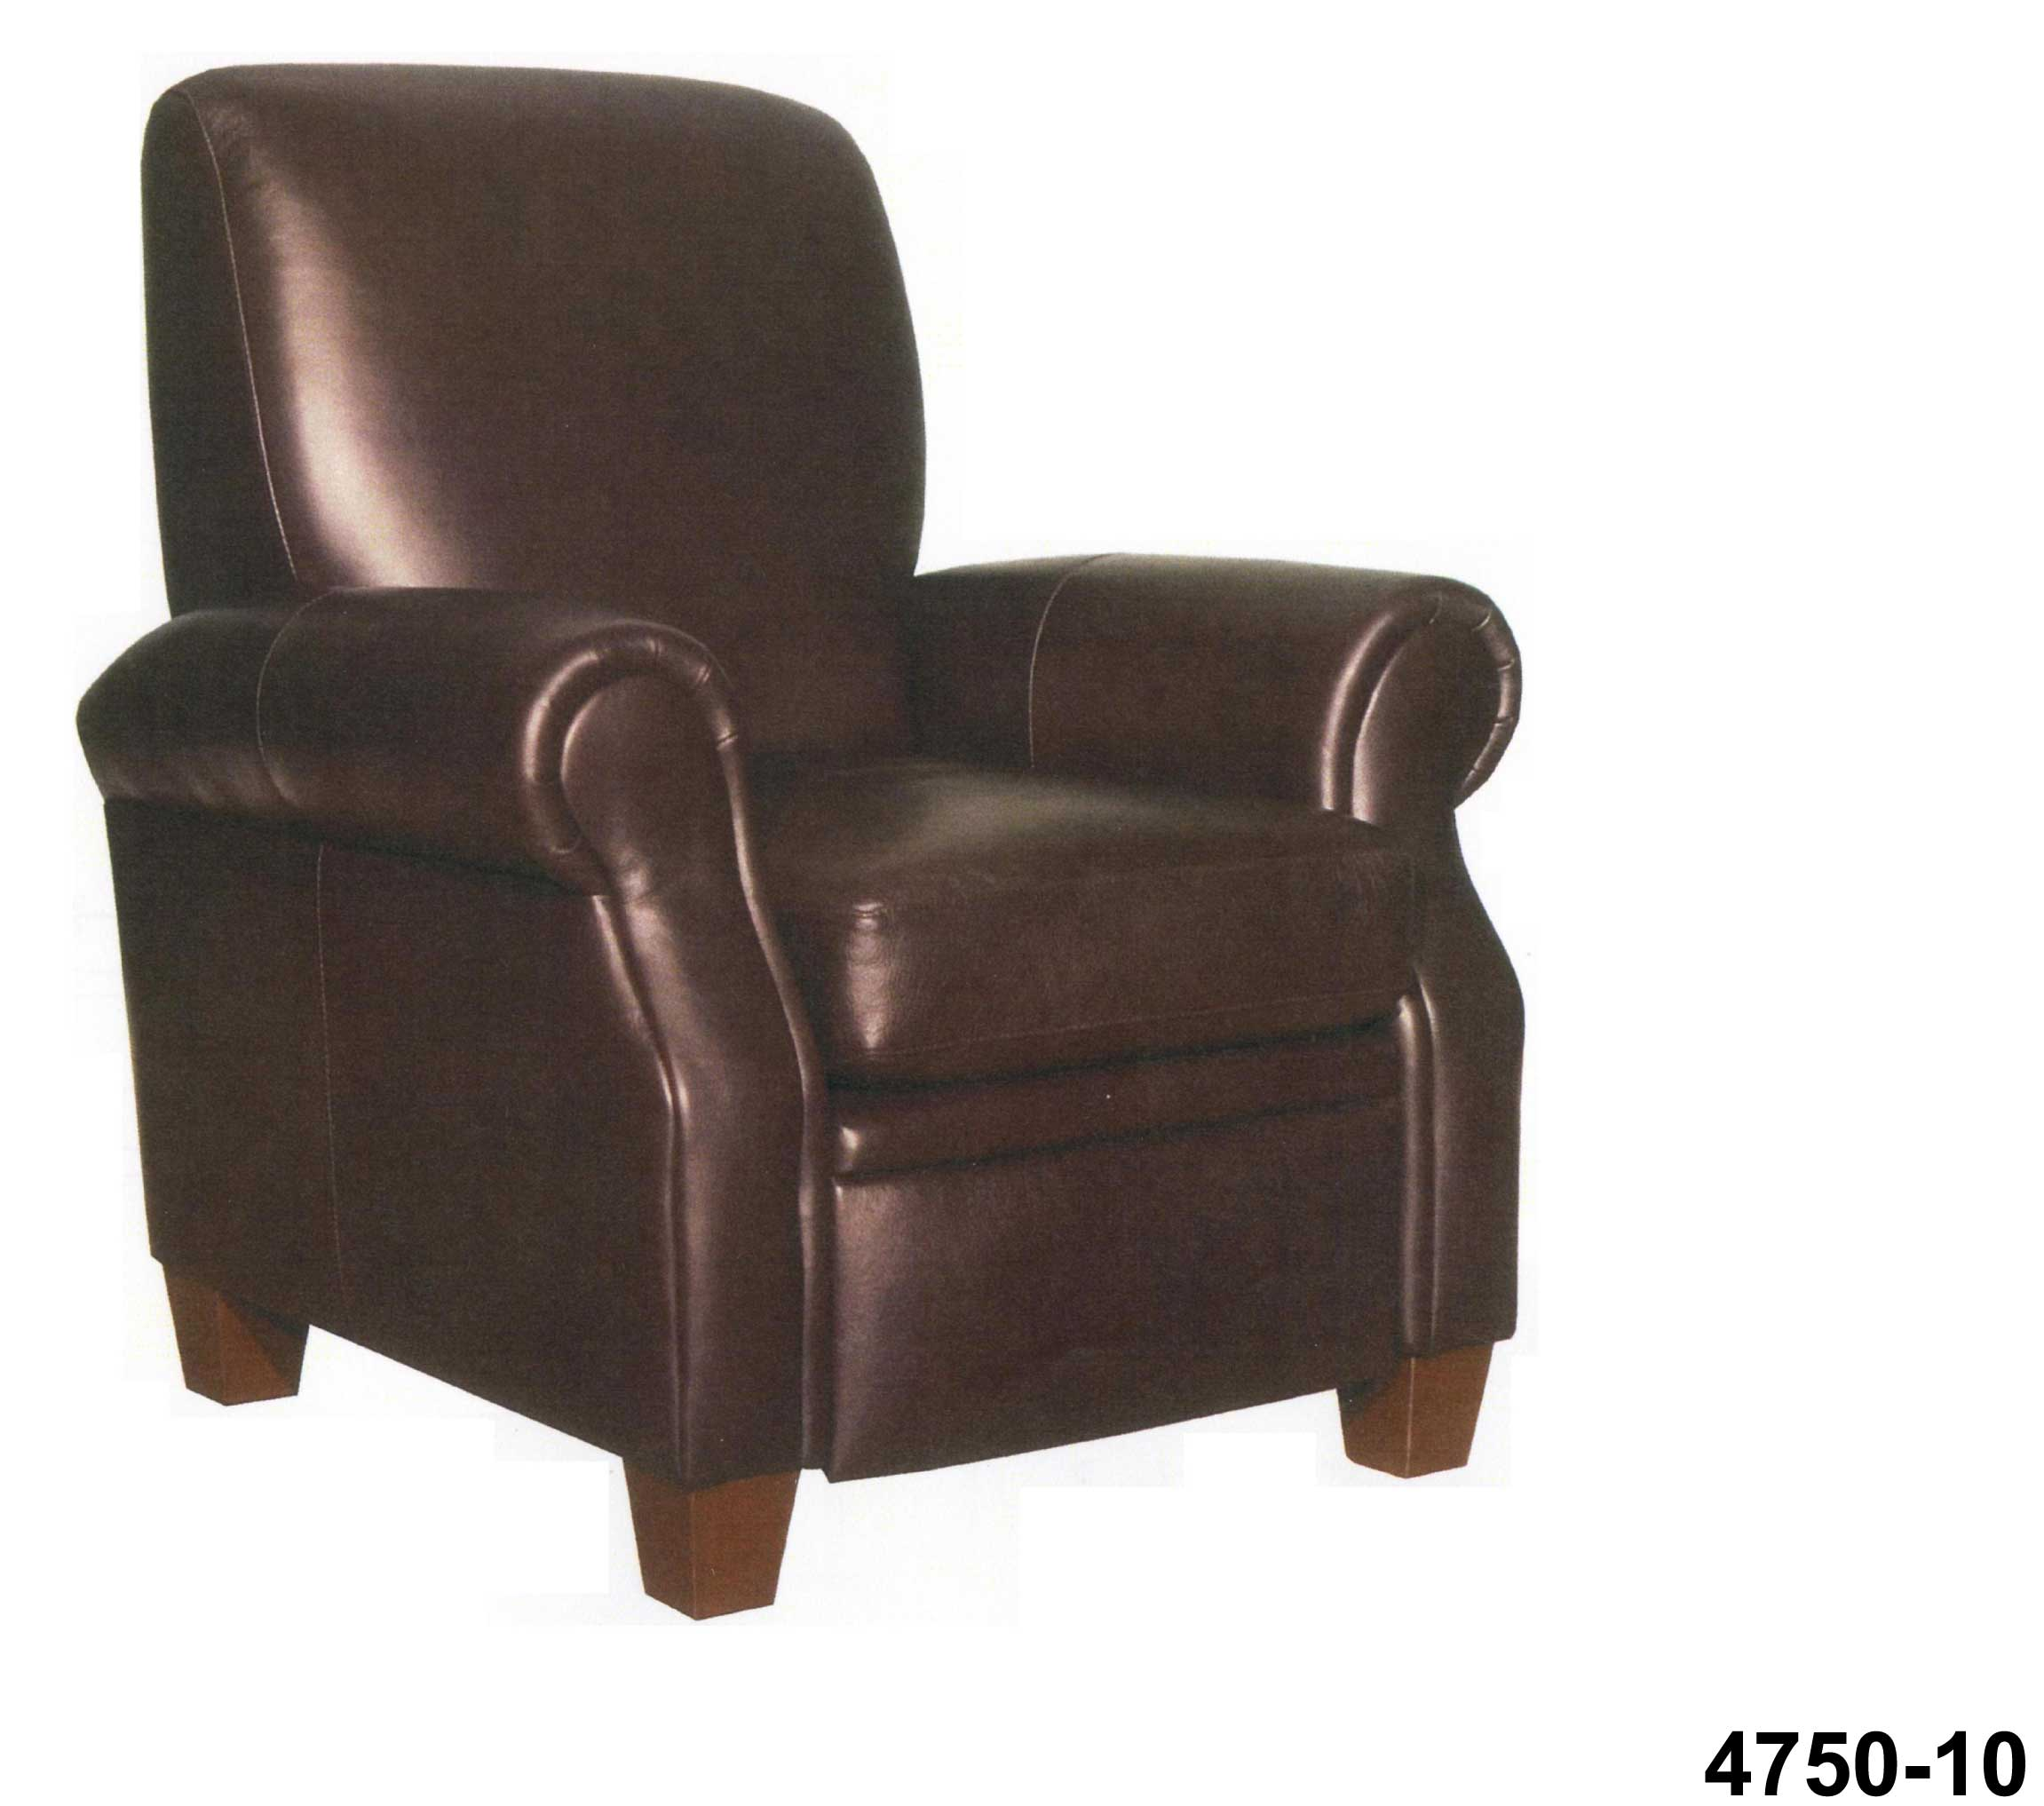 Leather Recliner Chairs Canada Venture Canada Manufacturer Of Quality Leather Furniture